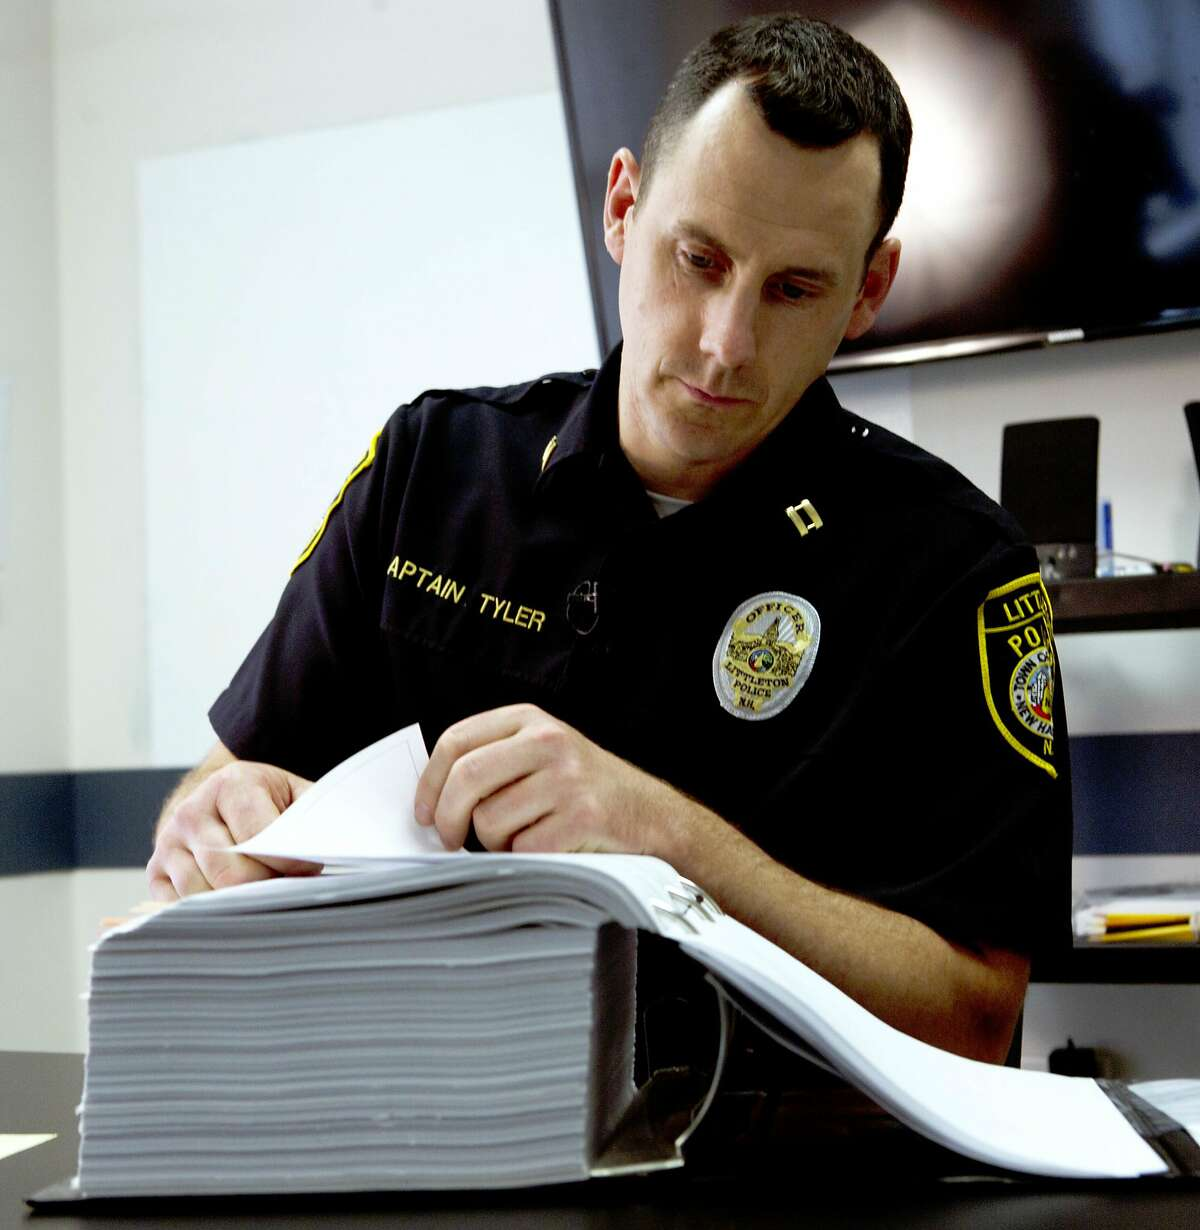 Littleton Police Department Capt. Chris Tyler looks though the file of convicted drug dealer Mike Millette at the police station in Littleton, N.H., on Wednesday, June 1, 2016. On the growing drug problem,